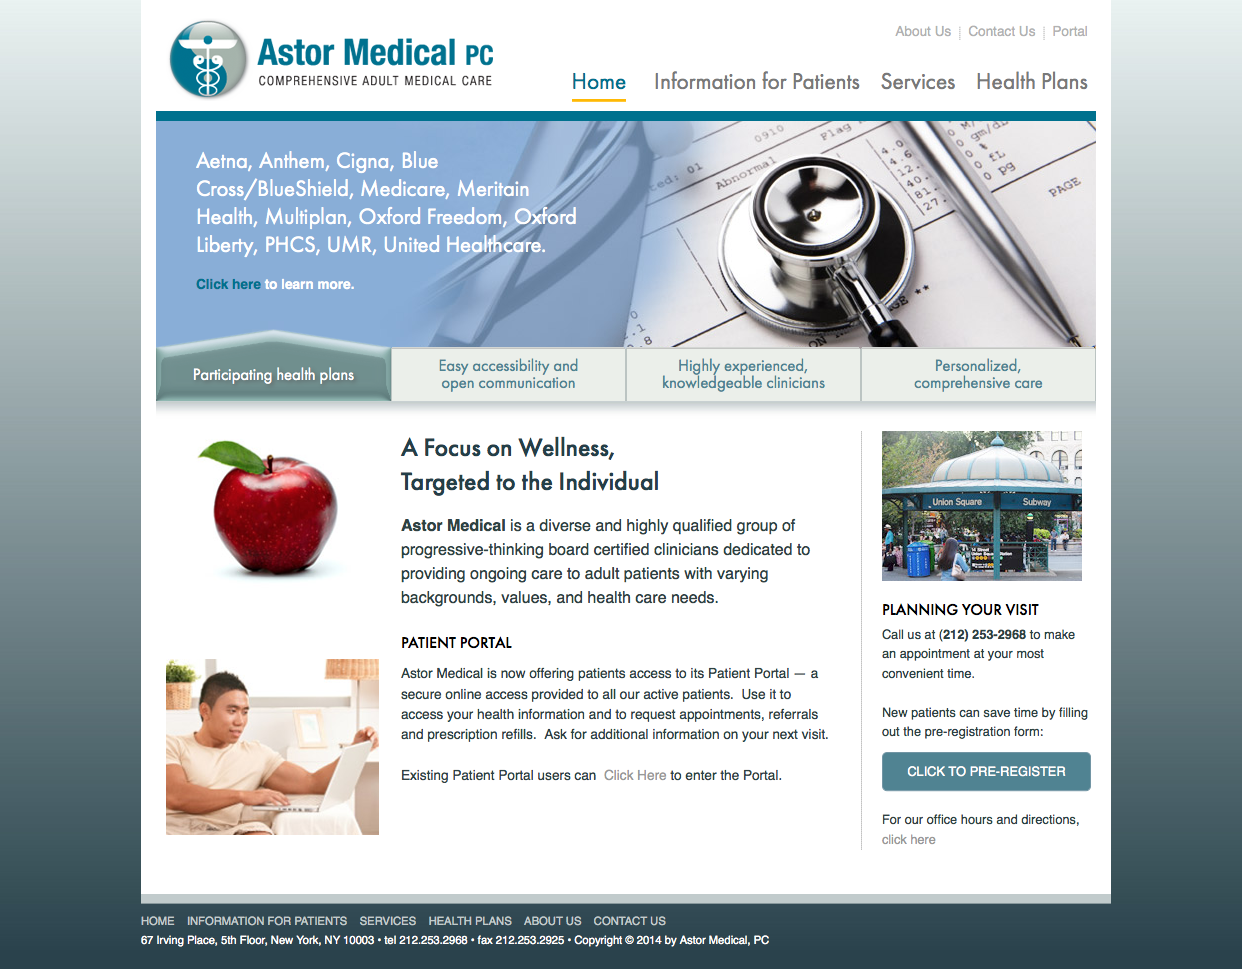 Astor Medical Is A Diverse And Highly Qualified Group Of